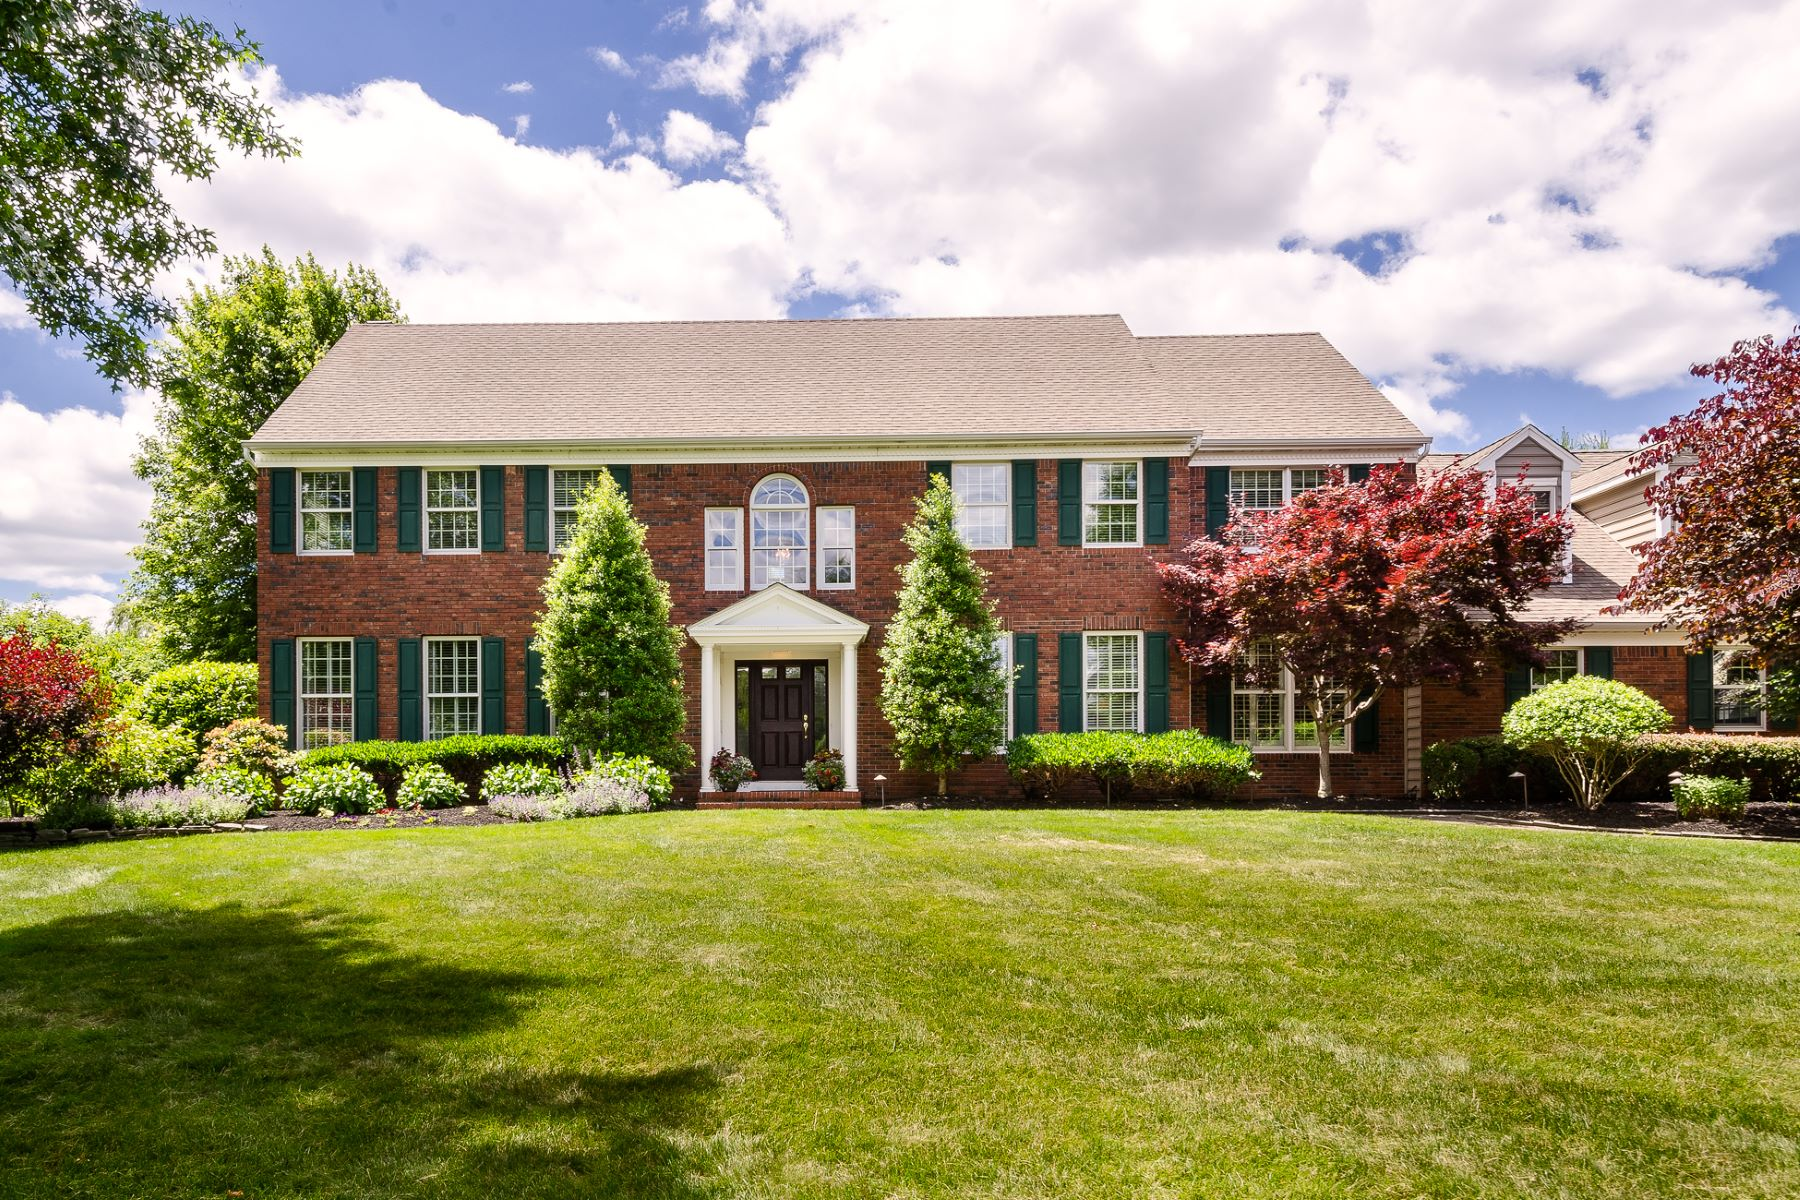 Casa Unifamiliar por un Venta en Regal Colonial with Beautiful Backyard Views 23 Parkview Road, Cranbury, Nueva Jersey 08512 Estados UnidosEn/Alrededor: Cranbury Township